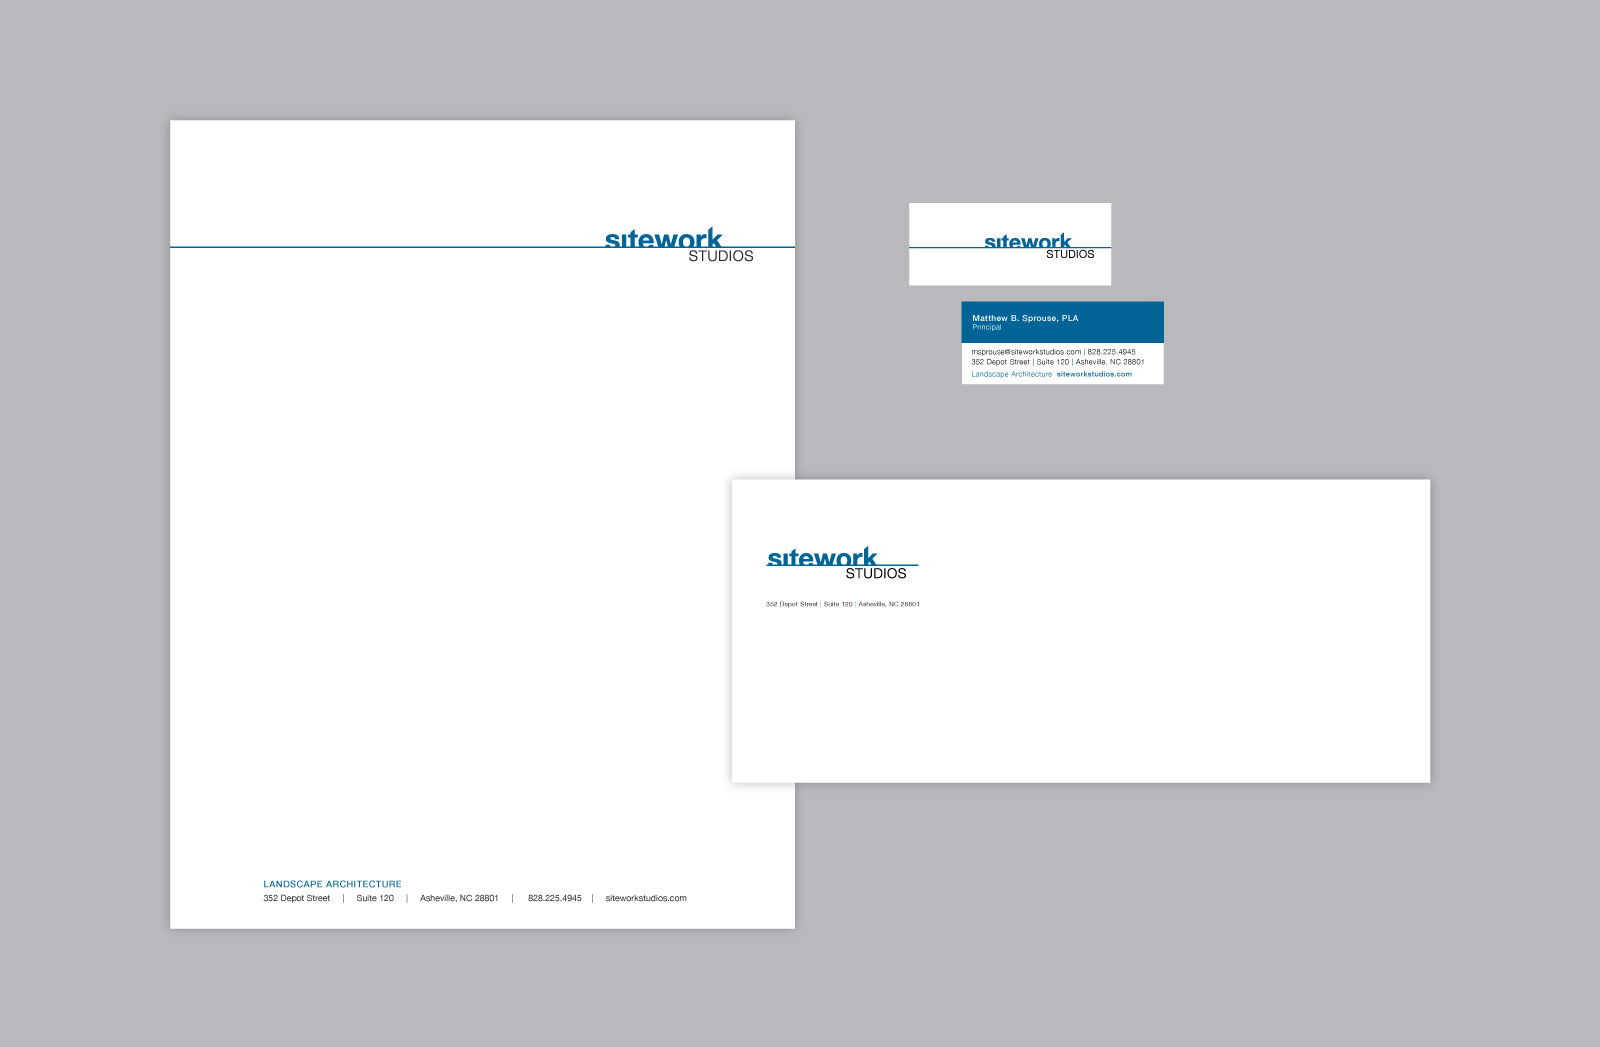 Sitework Studios stationery against a light gray background